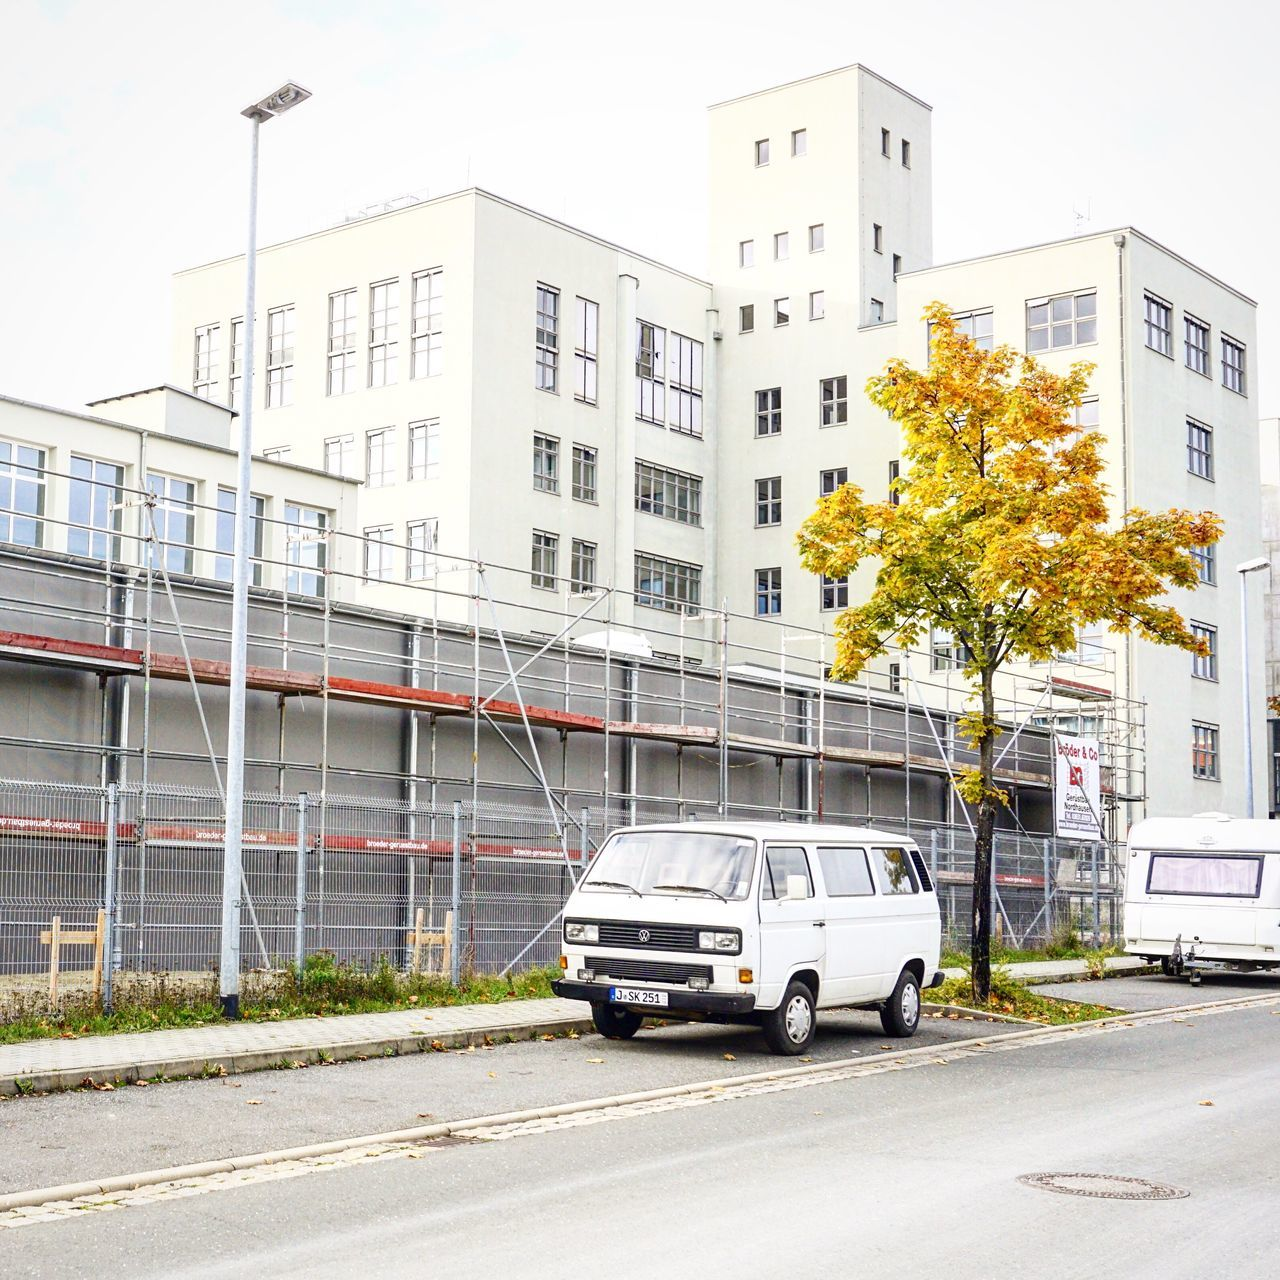 TakeoverContrast Jena Volkswagen Bulli Architecture Architecture_collection Fall Fall Colors Fall Beauty Autumn Autumn Leaves Autumn Colors